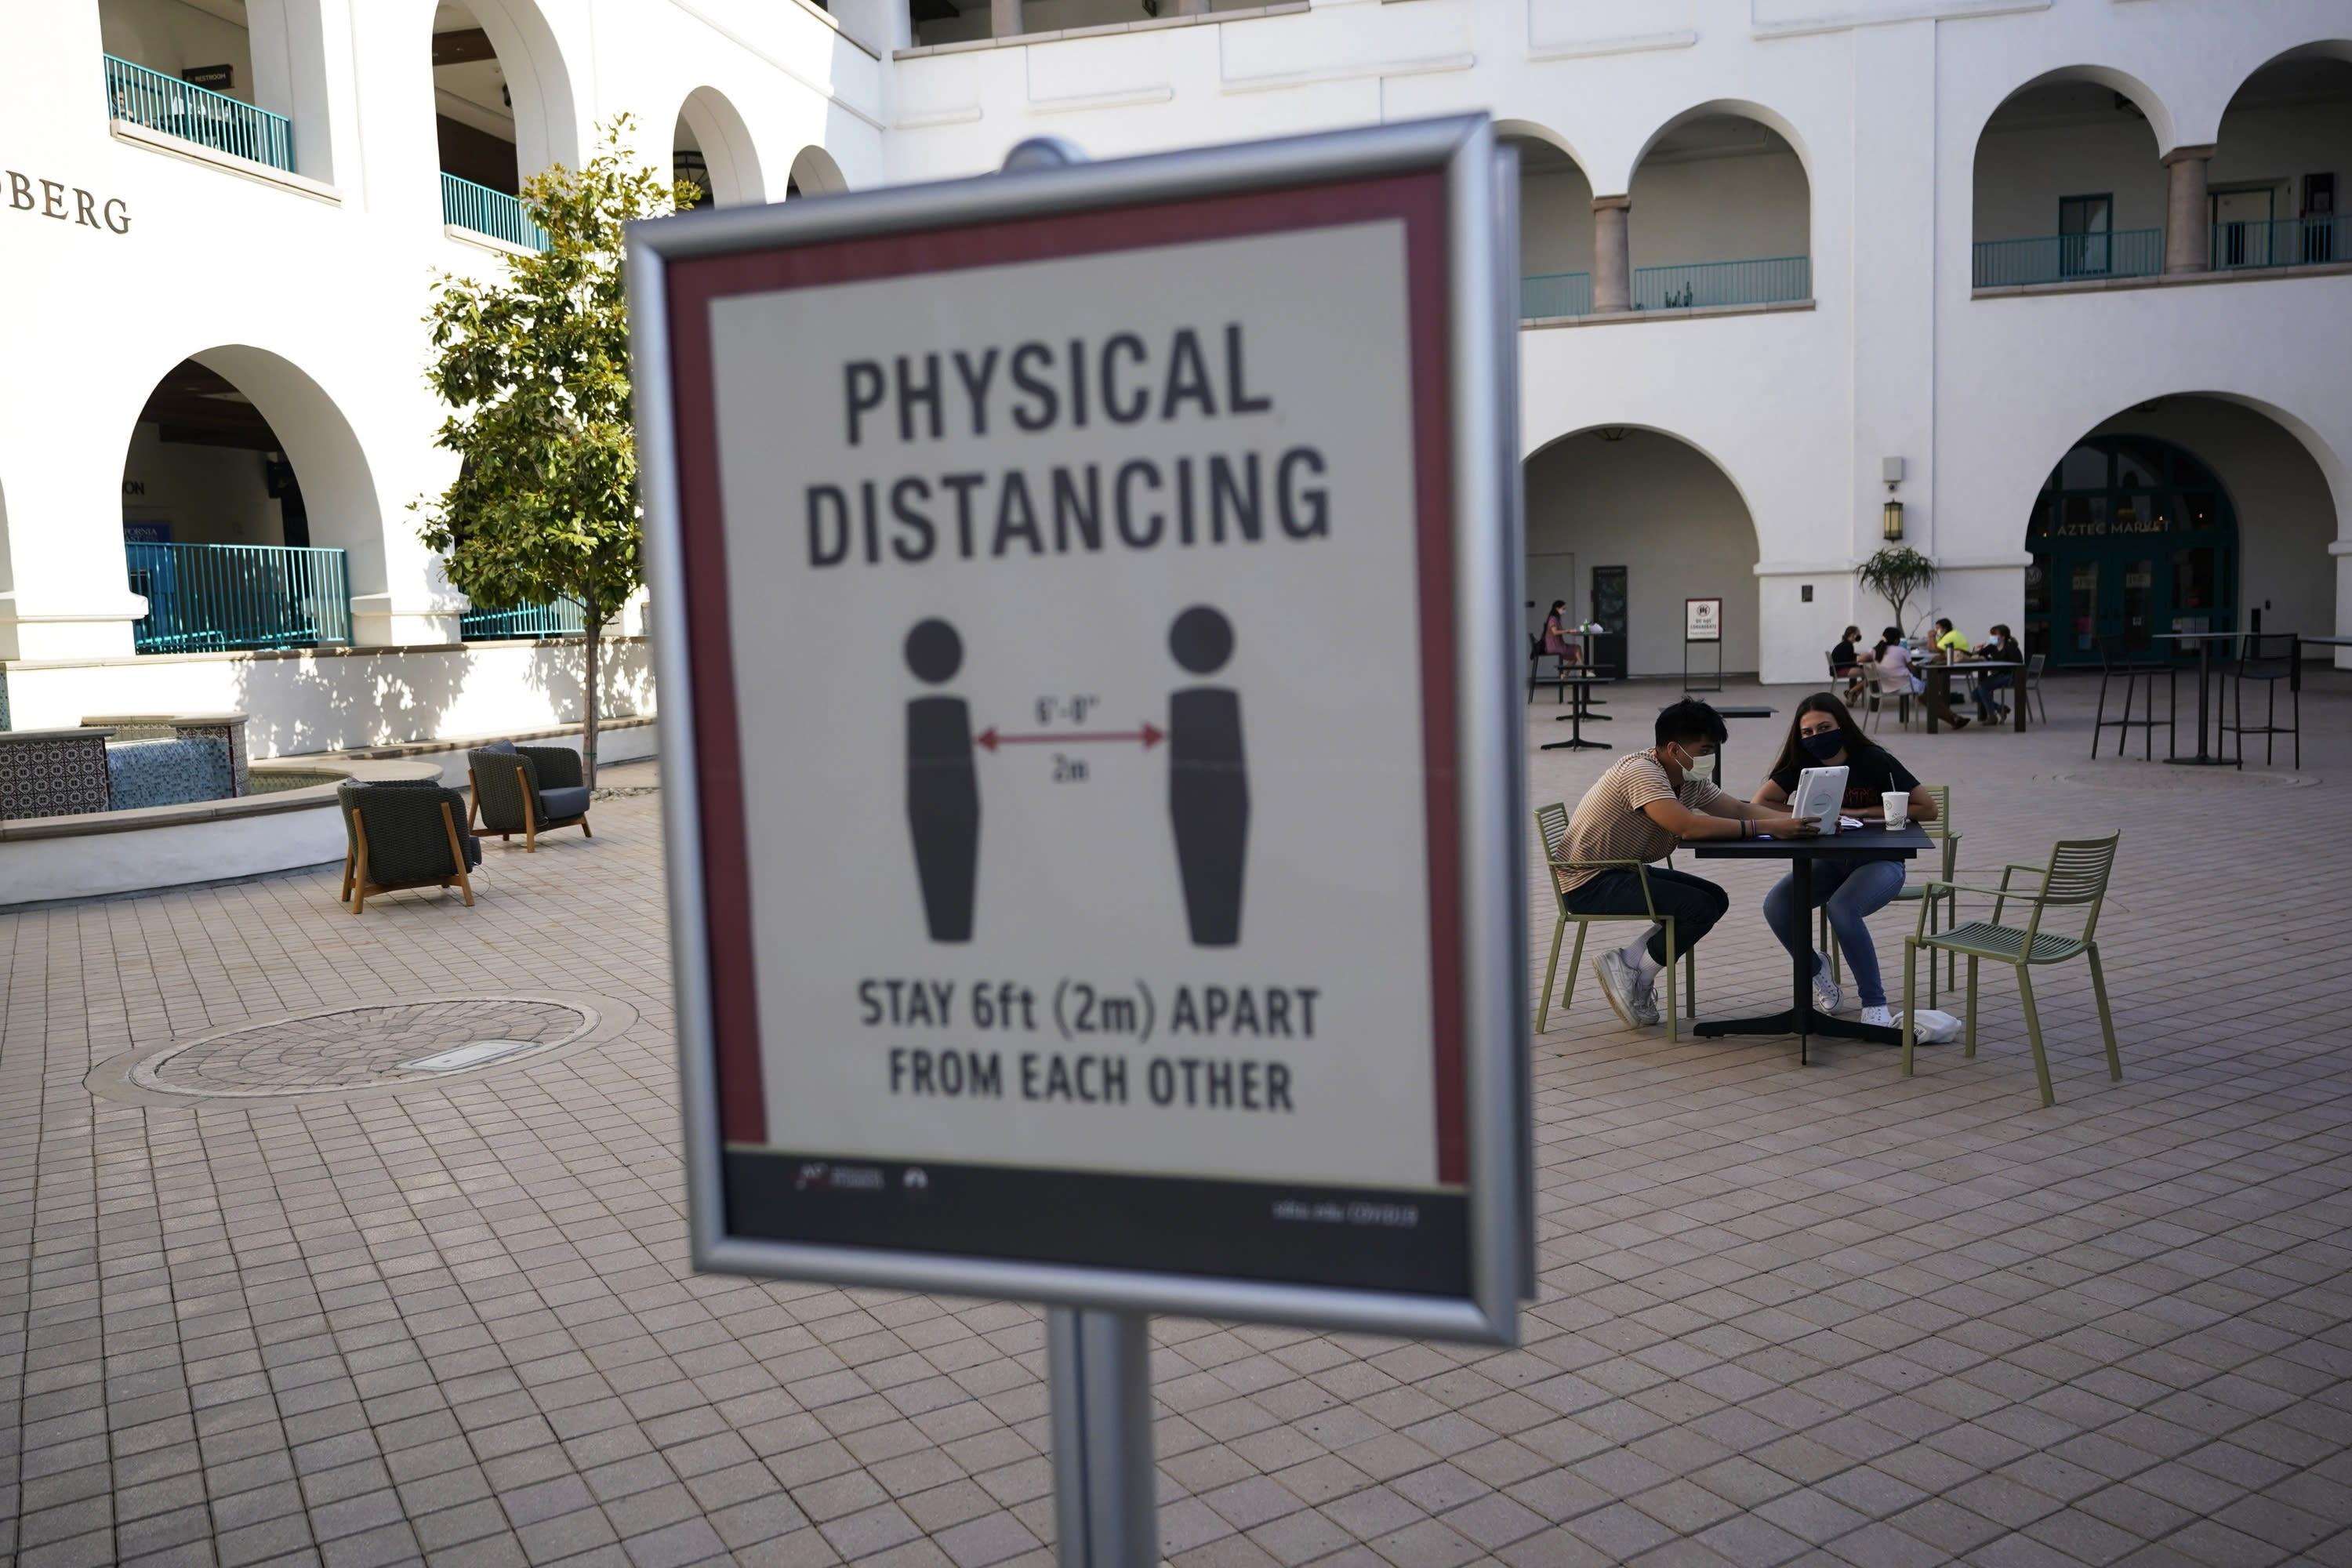 FILE - In this Wednesday, Sept. 2, 2020, file photo, people sit at tables at San Diego State University in San Diego. A coronavirus outbreak of more than 700 cases reported at San Diego State University has put all of San Diego County, with more than 3 million people, at risk of having to close indoor dining and shopping, many for a third time under California guidelines. (AP Photo/Gregory Bull, File)